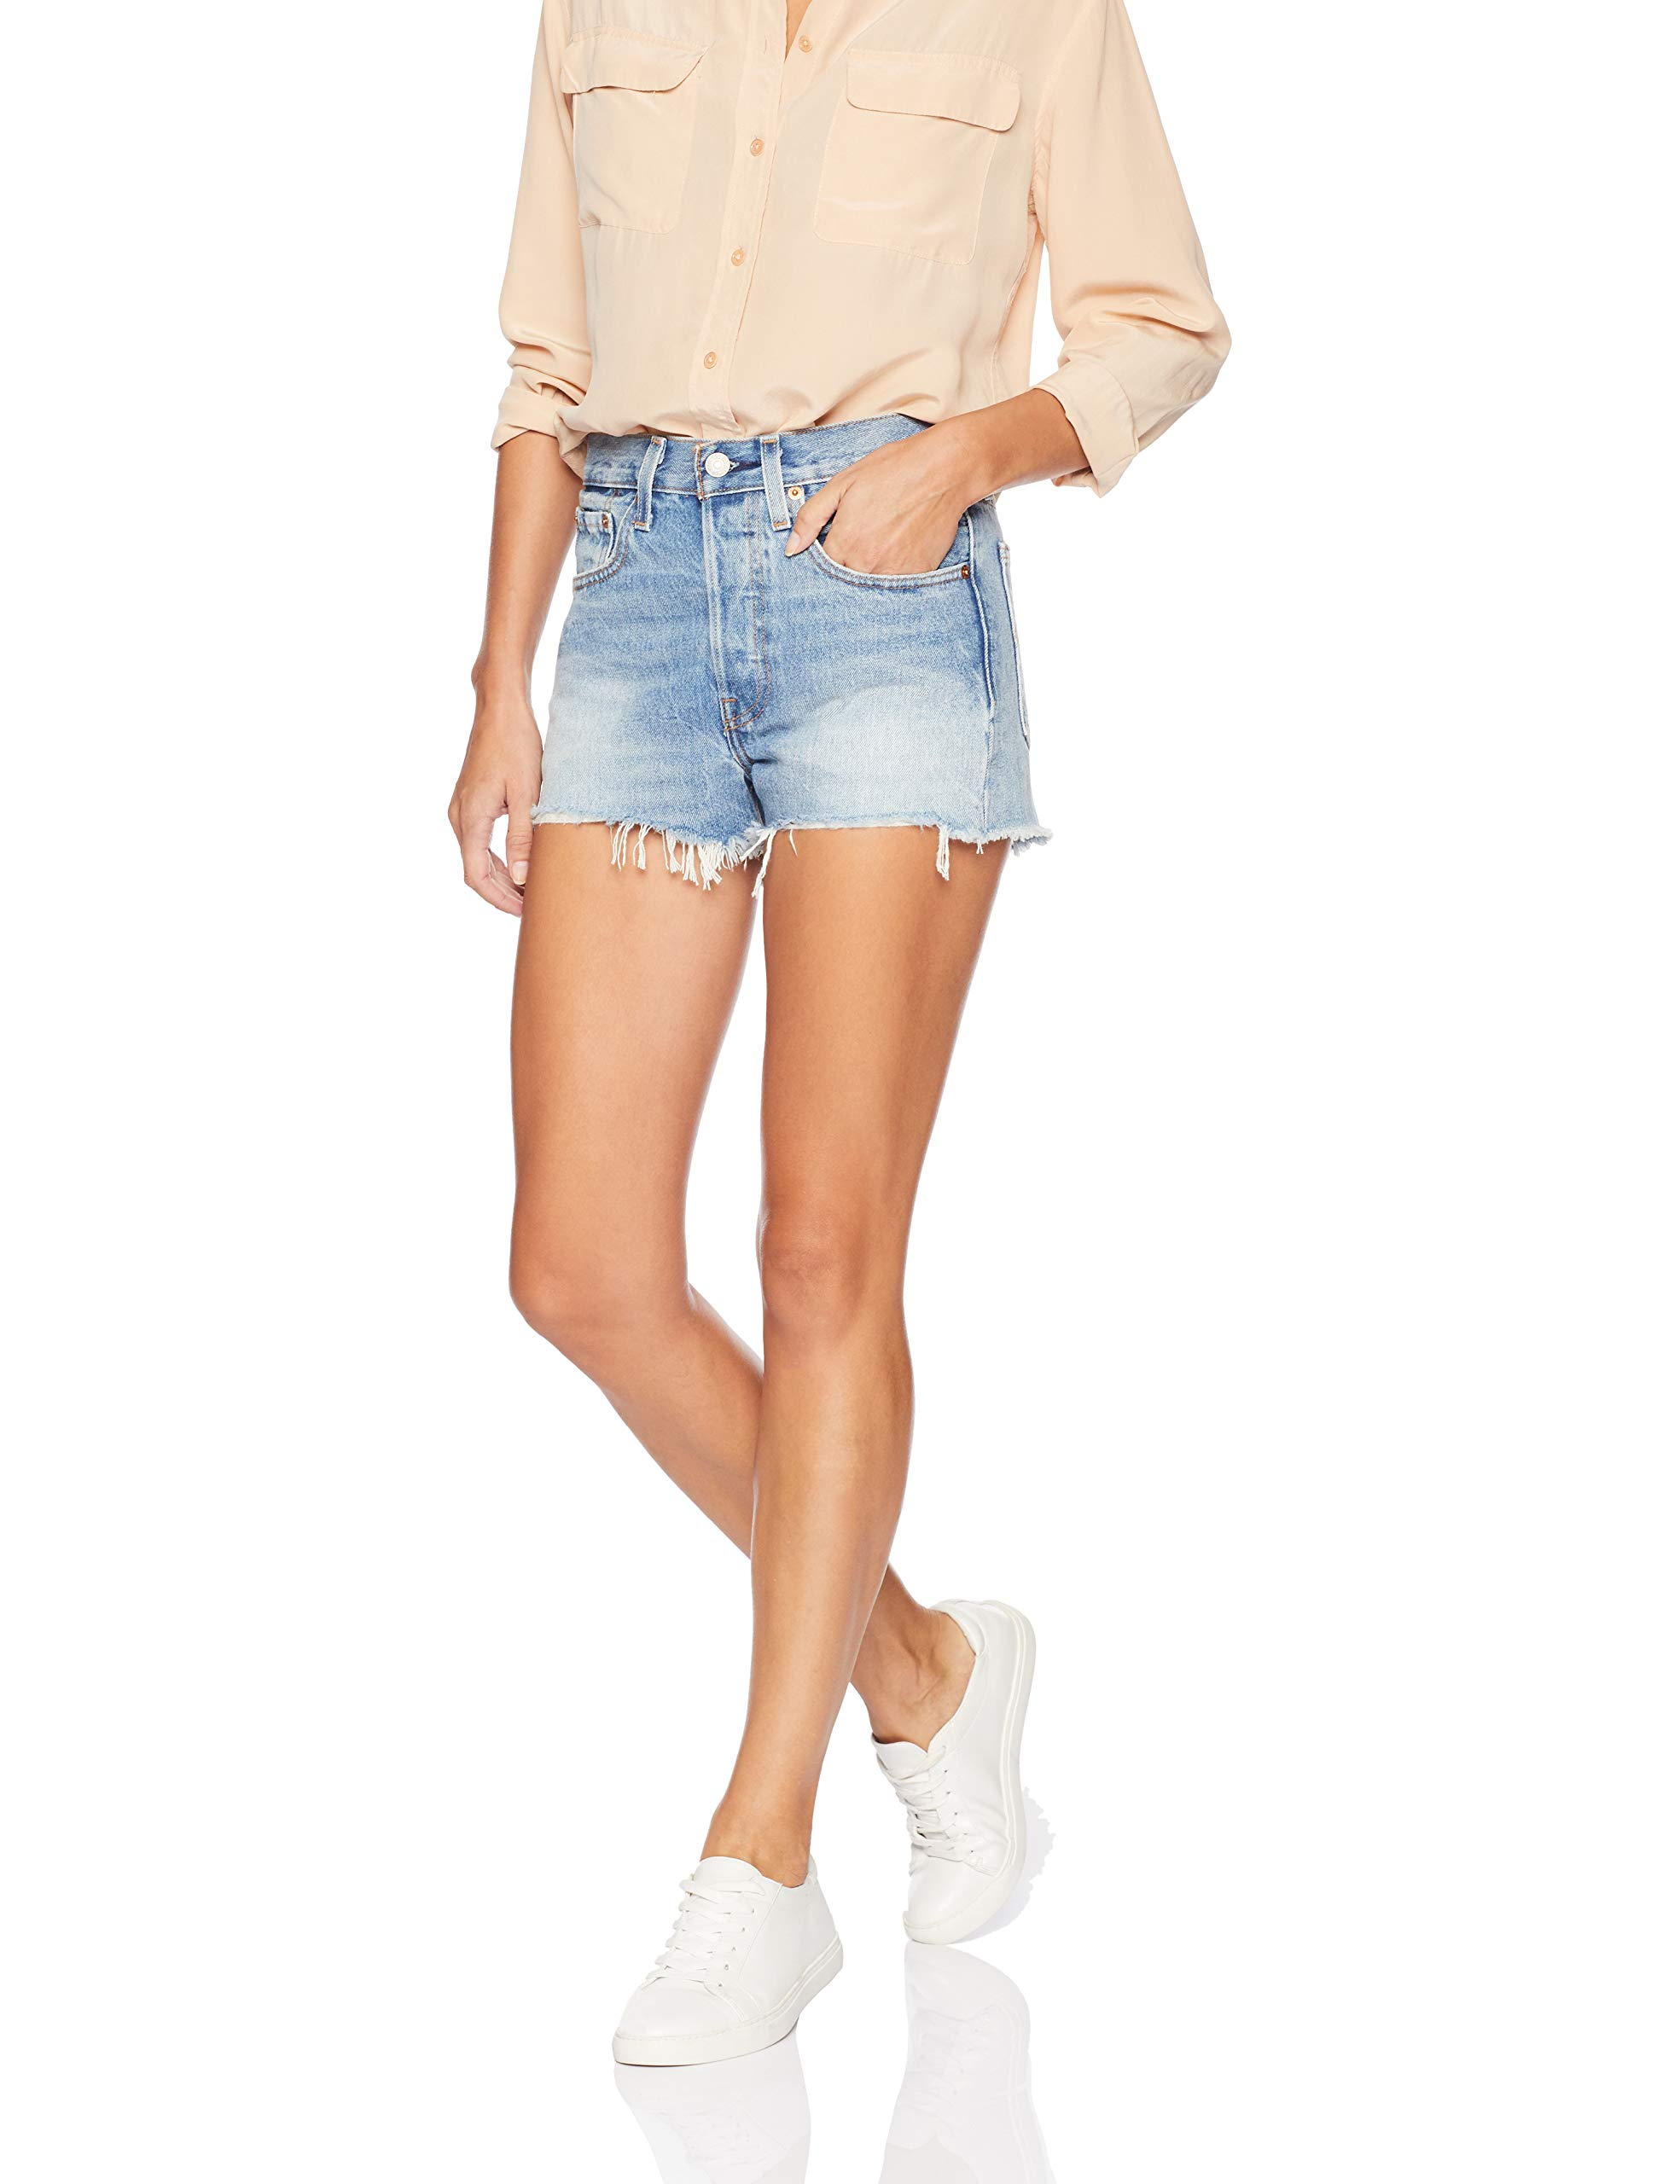 Levi's Women's 501 High Rise Shorts, Bring to Light, 31 (US 12)